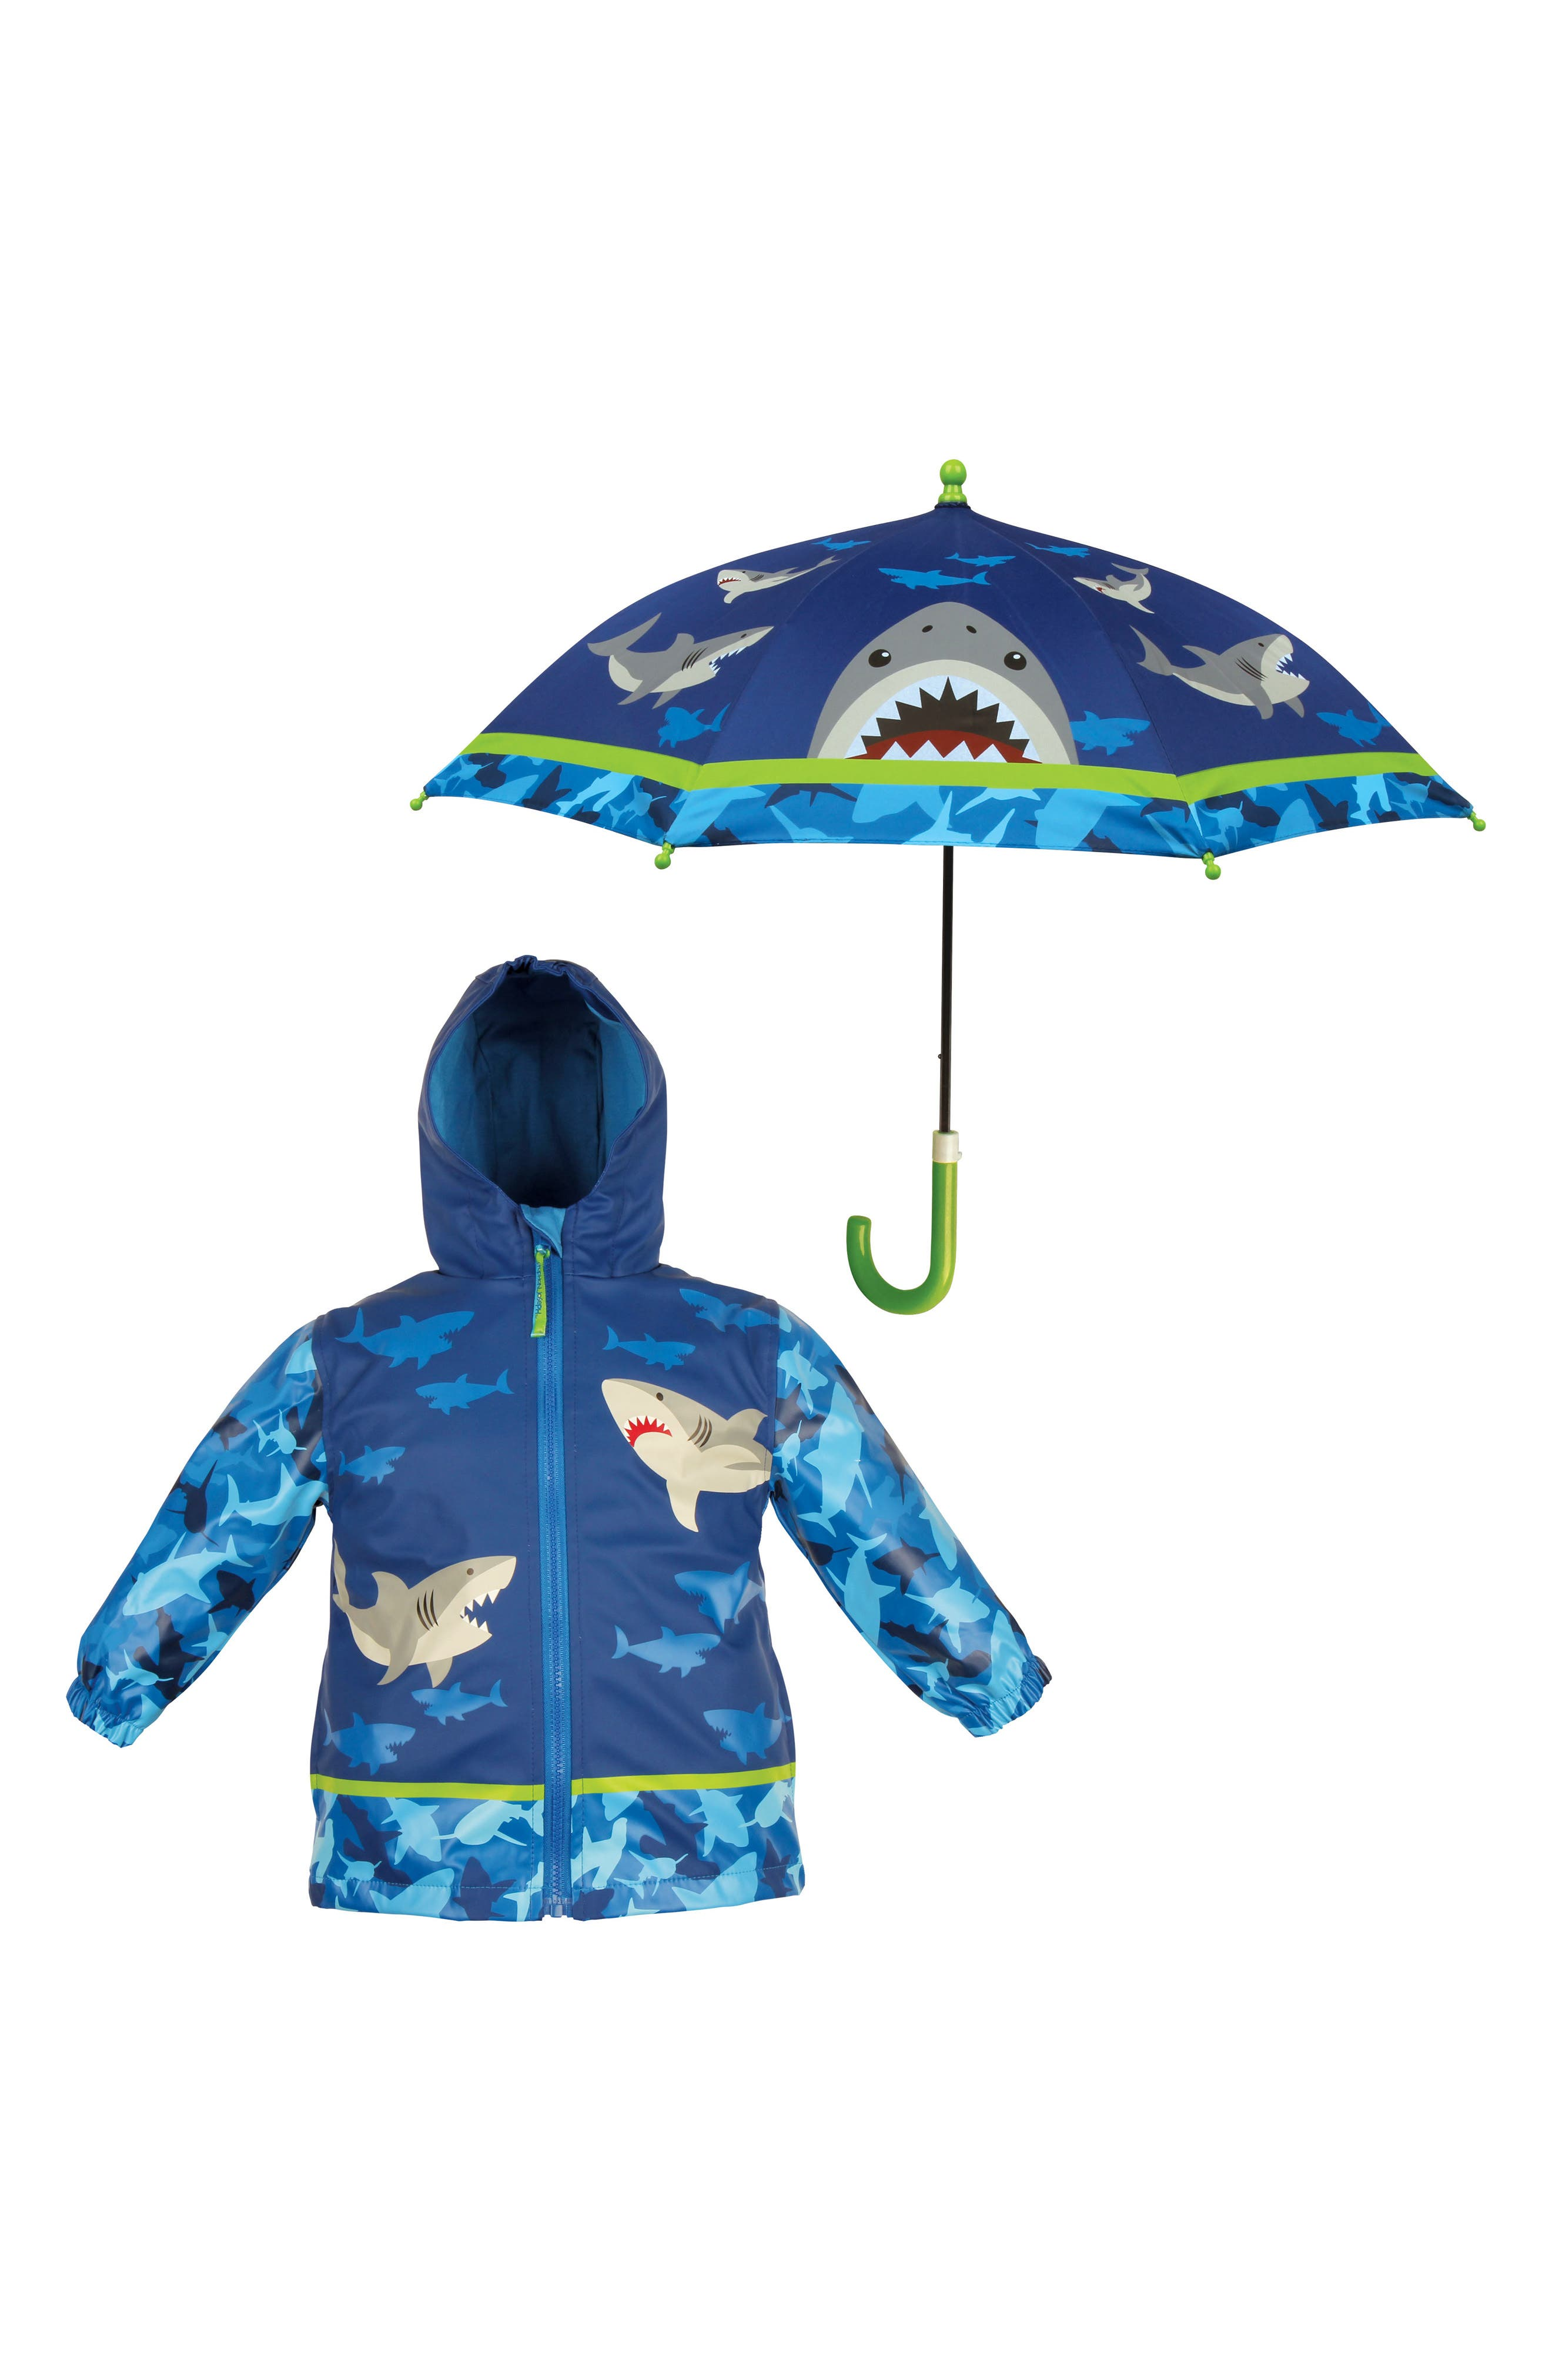 Shark Raincoat & Umbrella Set,                         Main,                         color, Shark